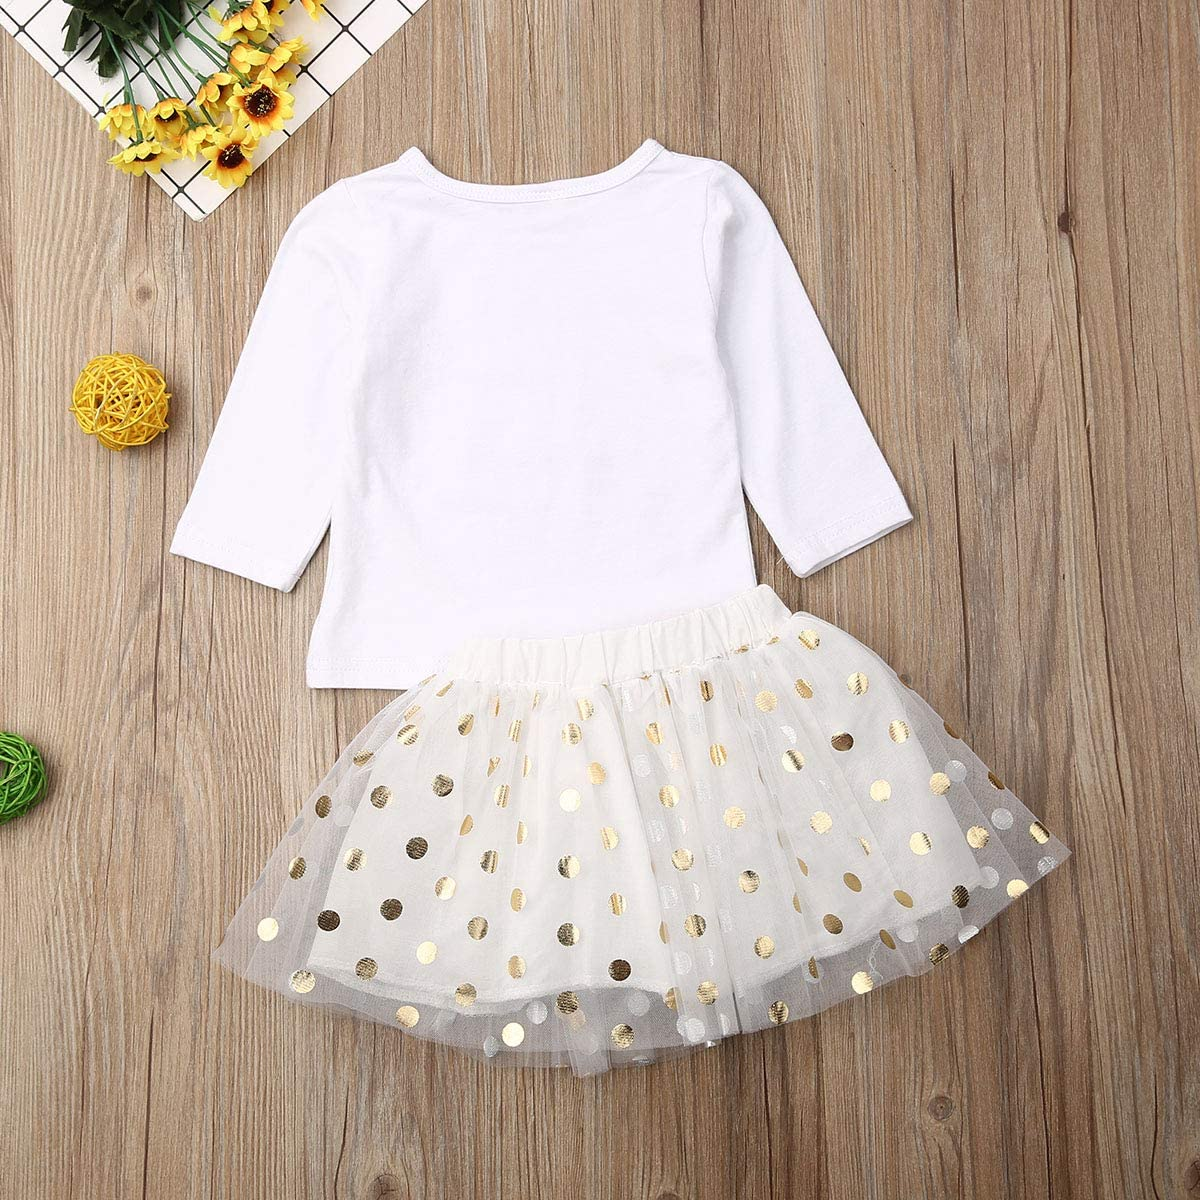 Gold Sequins Shorts Pants Outfit Set 3 Style Baby Girl Gold Letter Print Sleeveless Vest Bowknot Headband